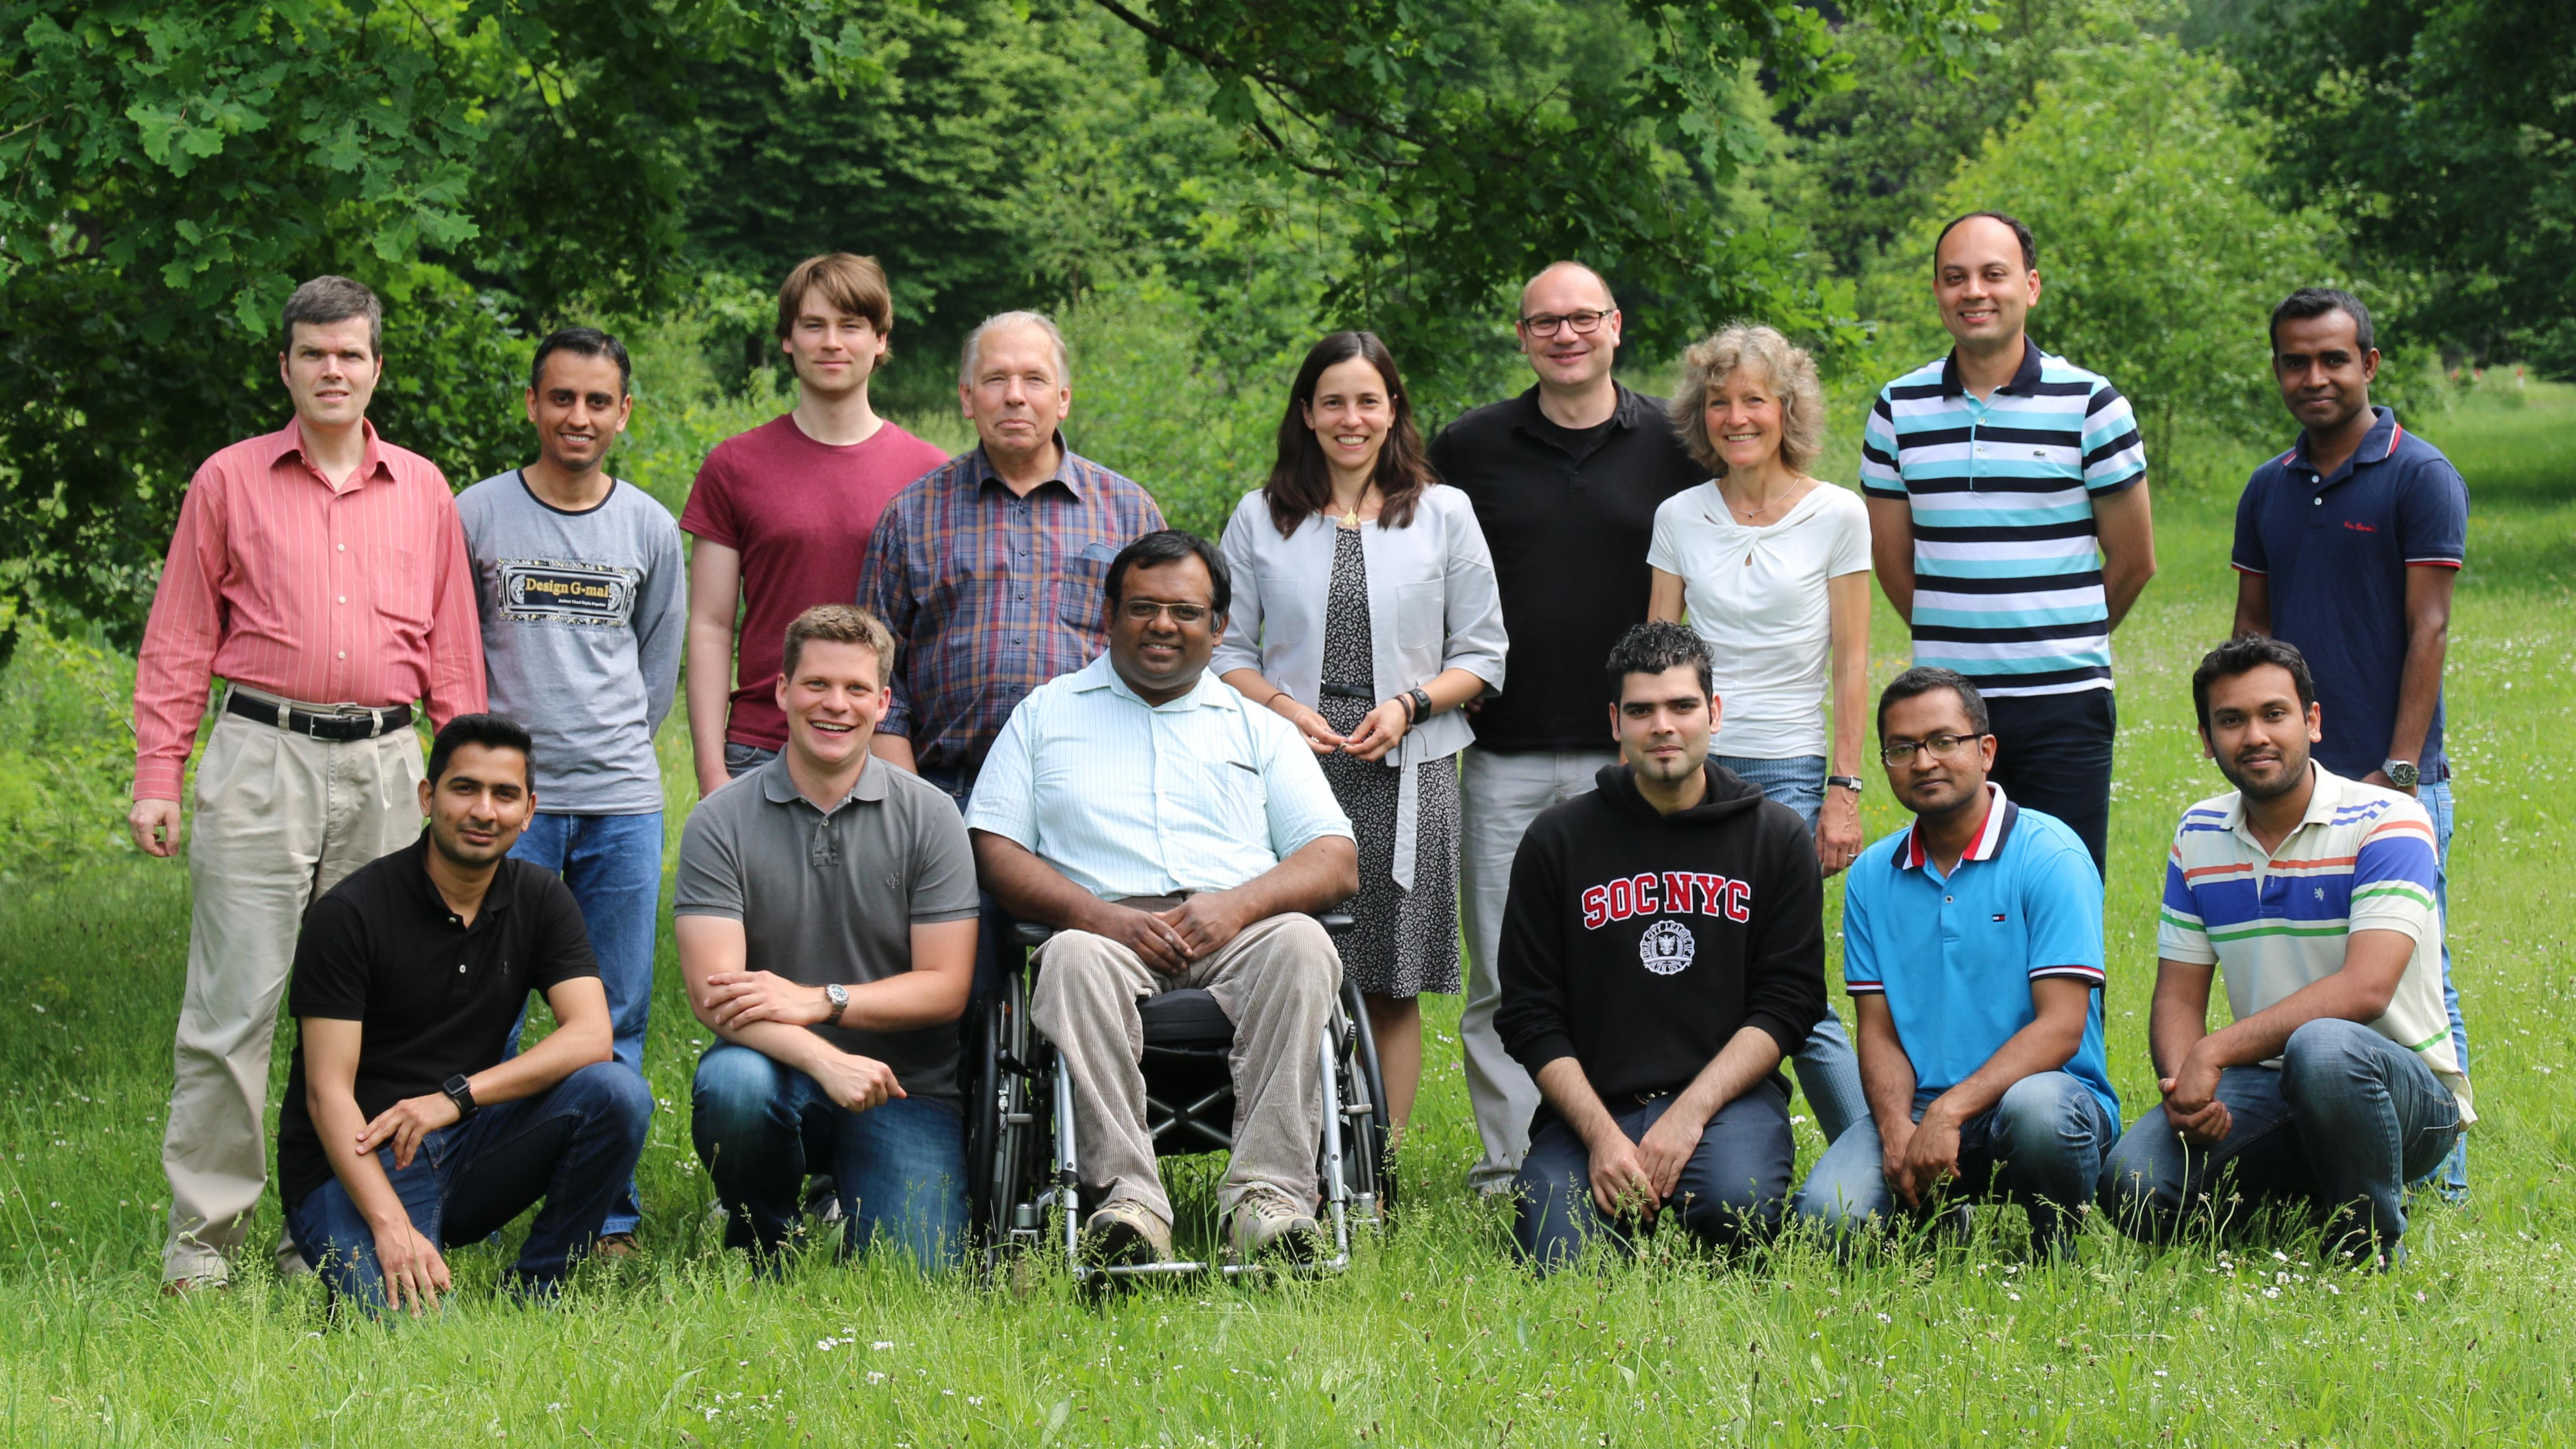 Group picture of the ComNets team